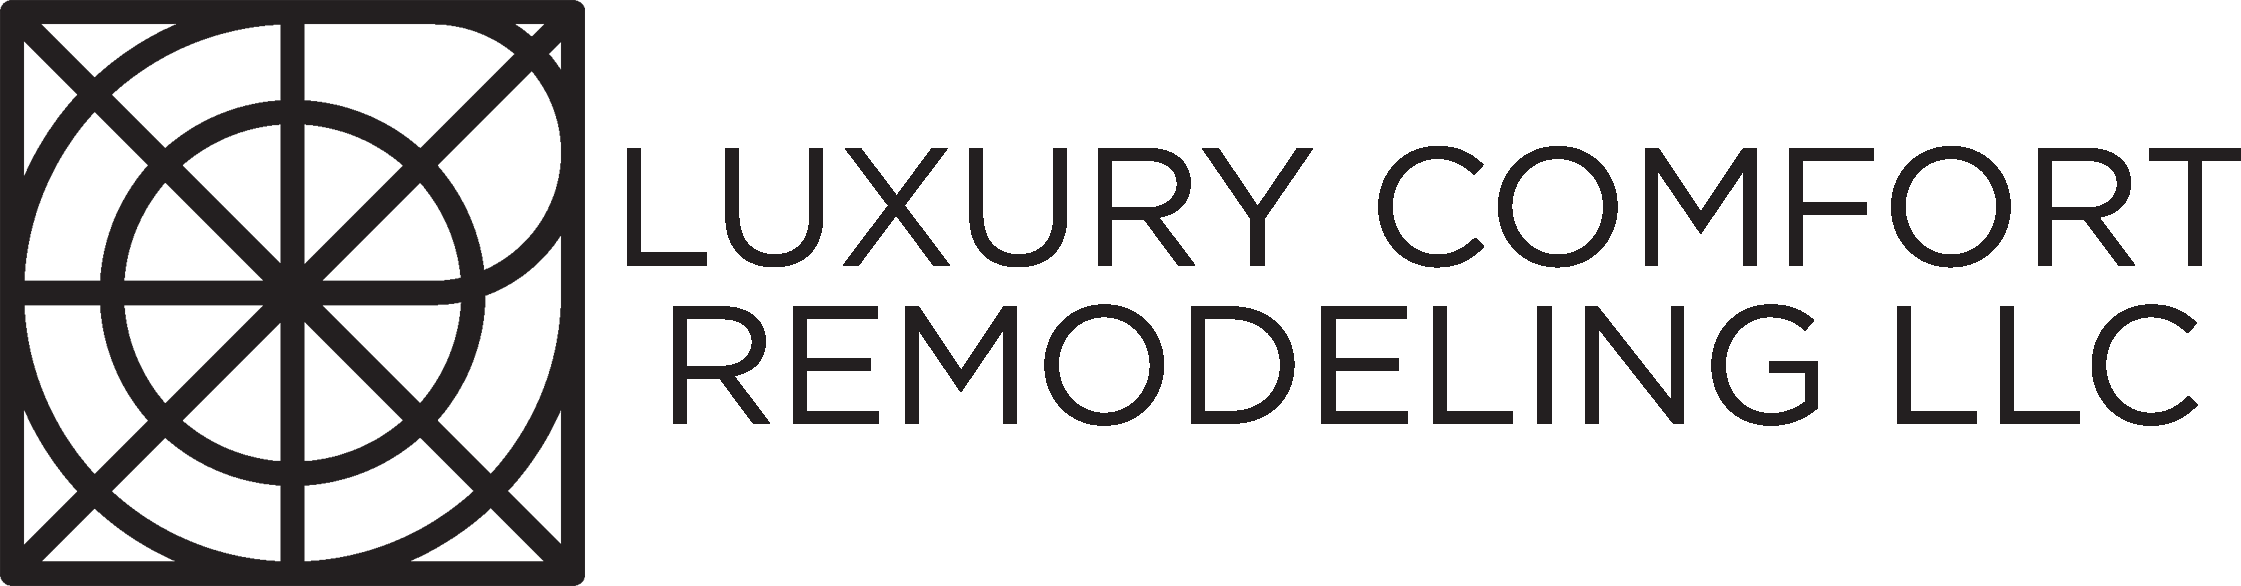 Luxury Comfort Remodeling LLC